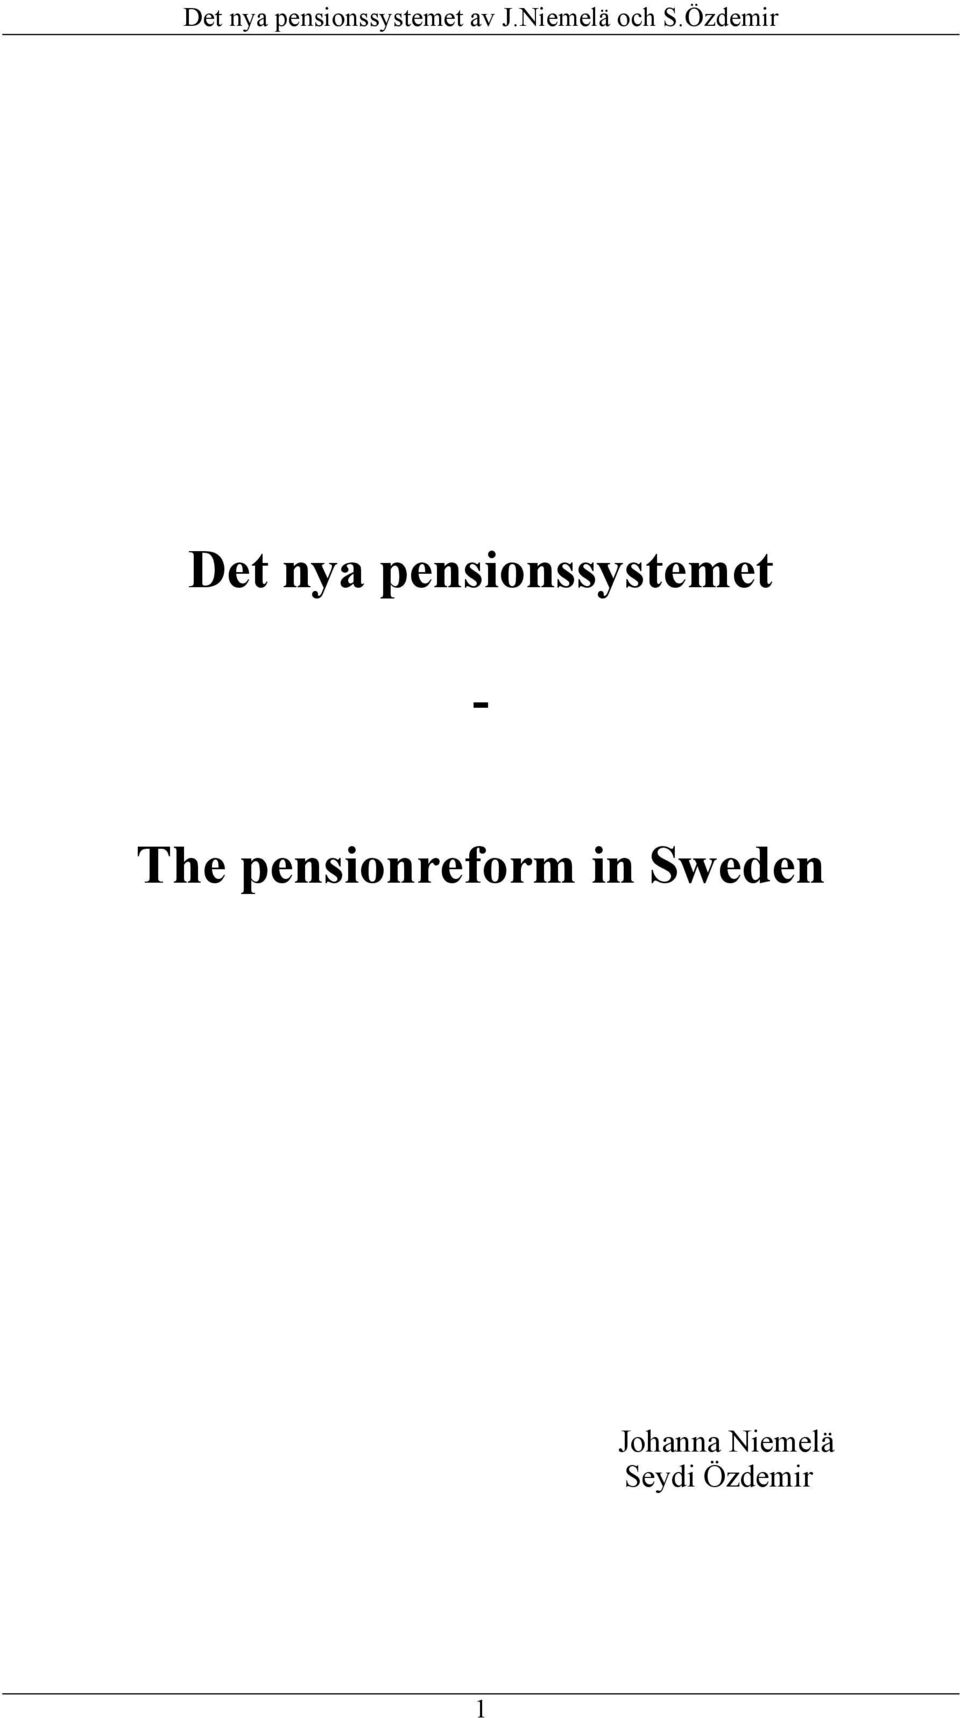 The pensionreform in